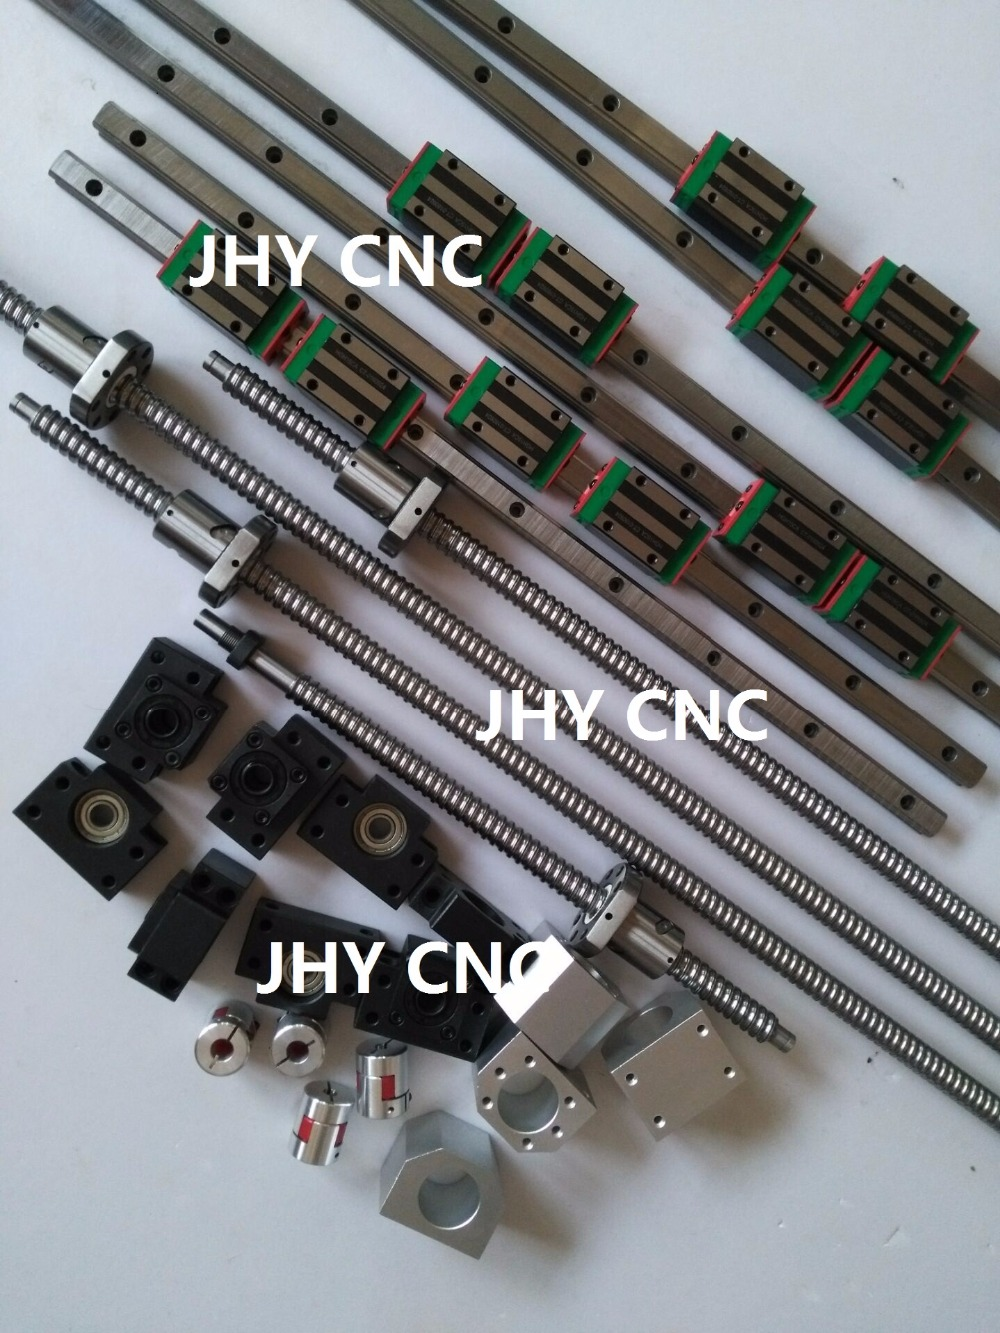 25mm JHY Linear guide rail carriages , SFU2505 Ball screws with BALLNUT and related elements + 2.2kw Spindle motor set for CNC toothed belt drive motorized stepper motor precision guide rail manufacturer guideway